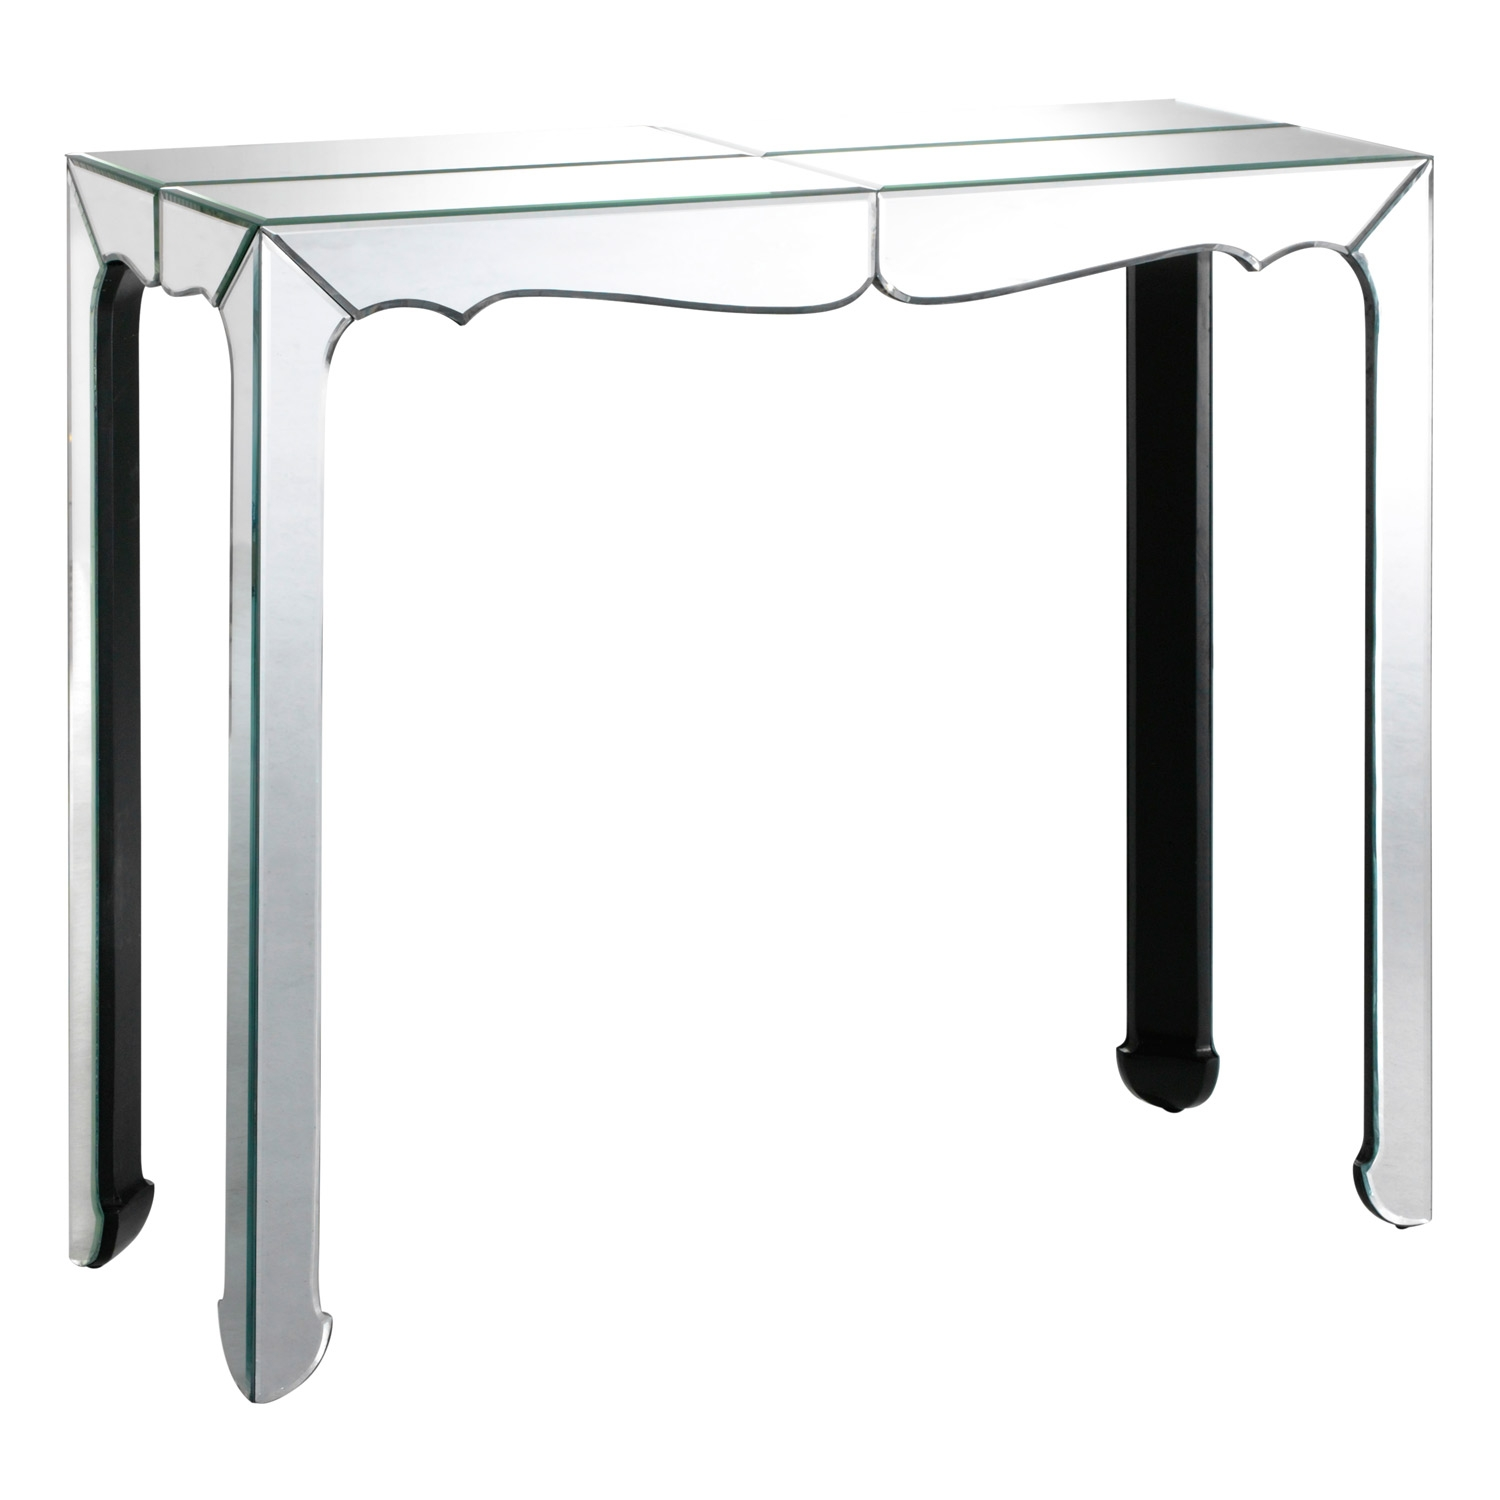 Stunning White Lacquer Console Table Inside Modern Console Tables Designer Home Decor And Furniture